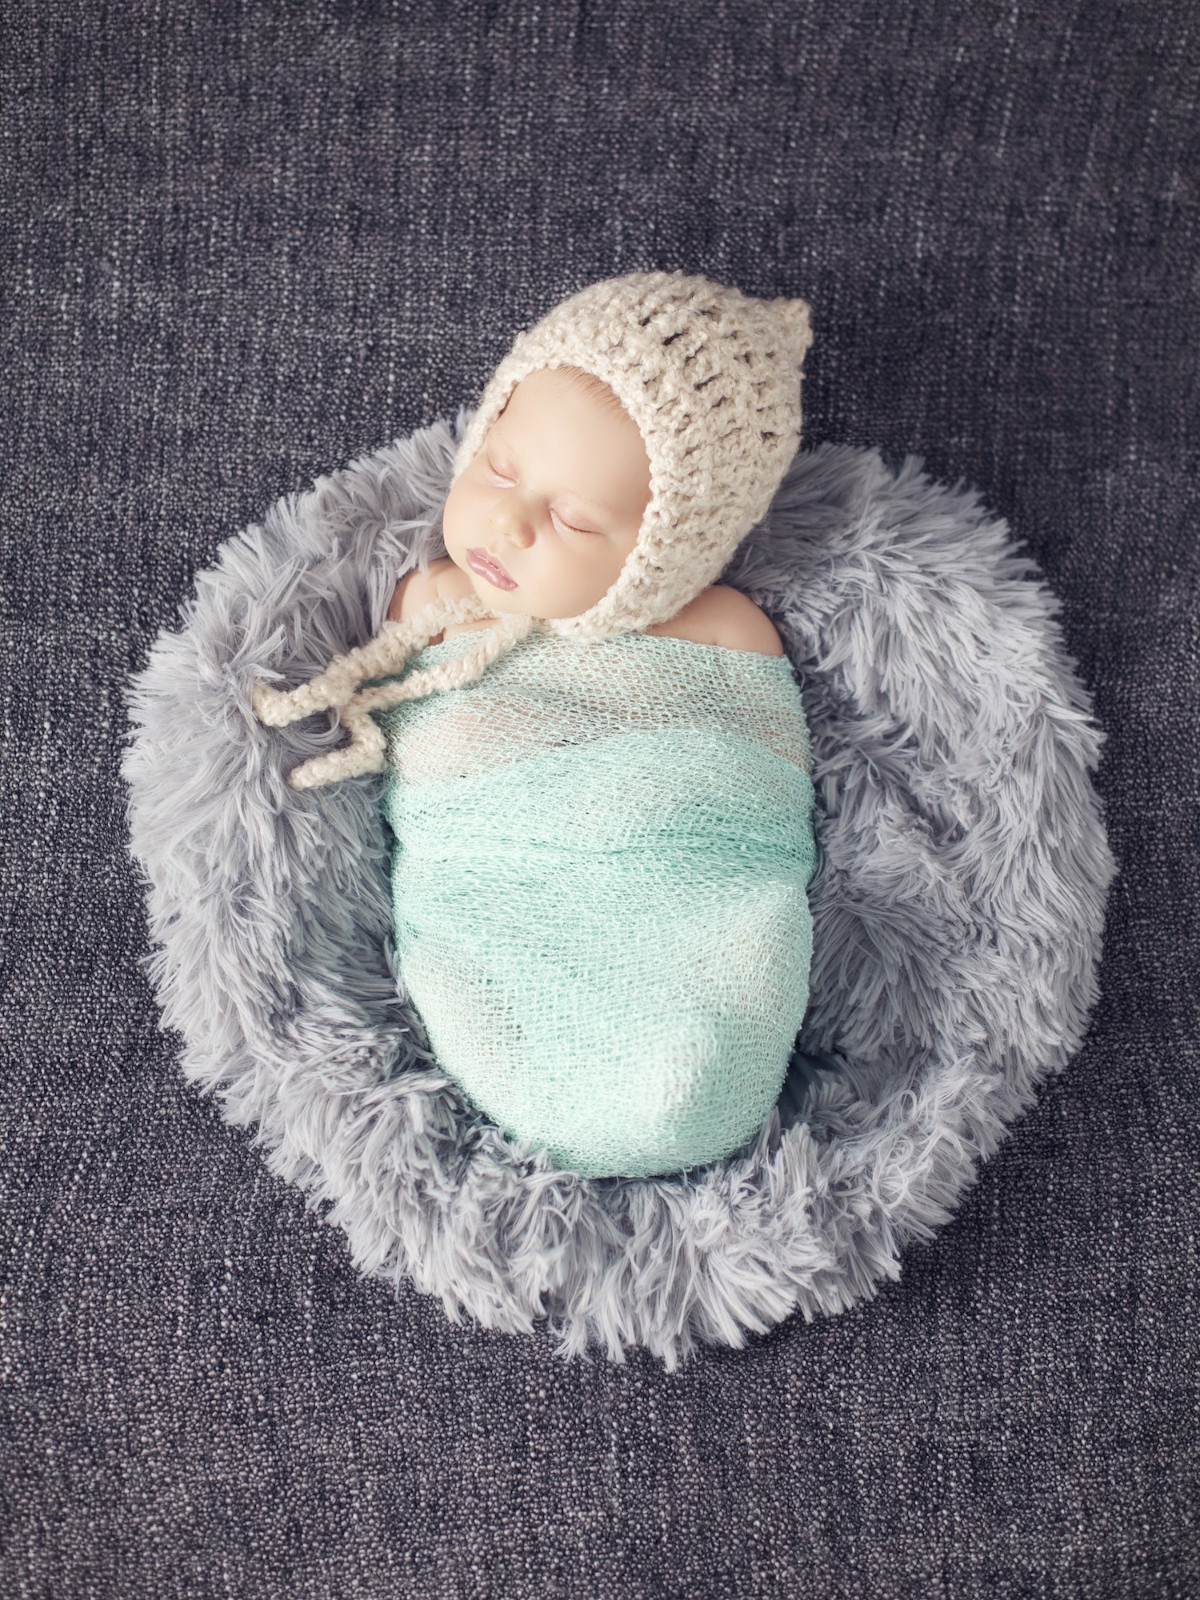 newborn_photographer_miami_little_boy_wraped_in_blue